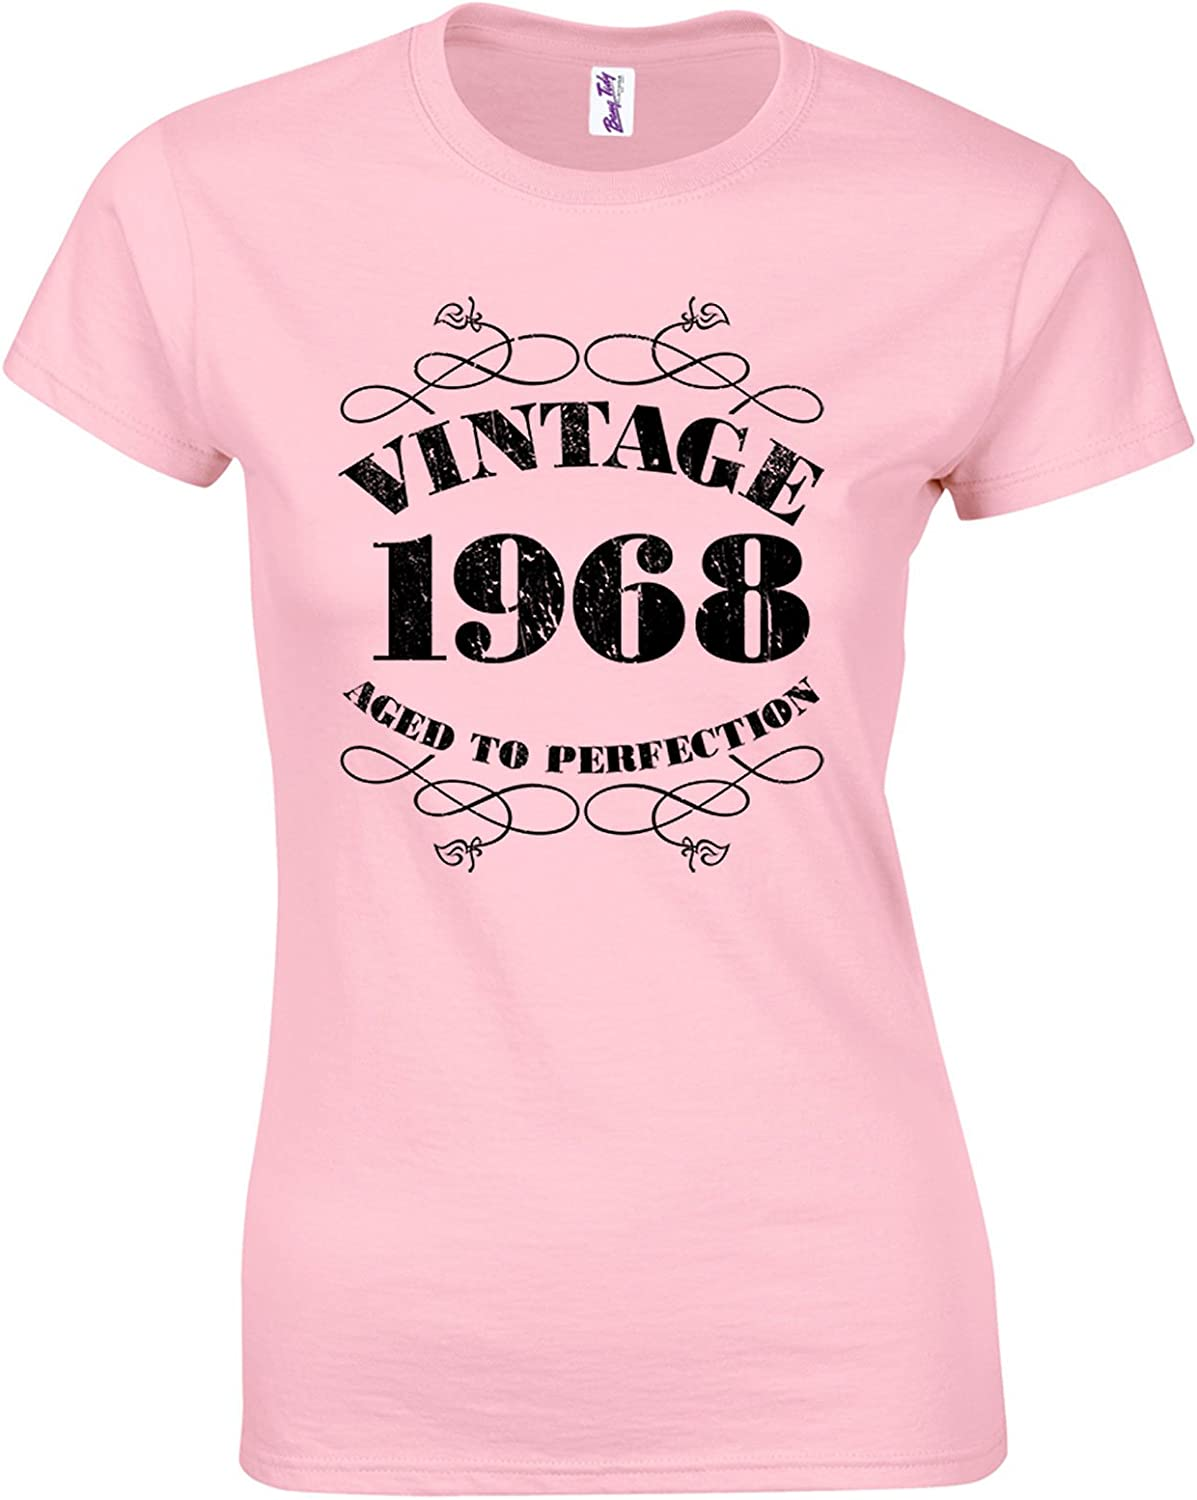 Bang Tidy Clothing 50th Birthday Gifts for Women Her Vintage 1970 T Shirt